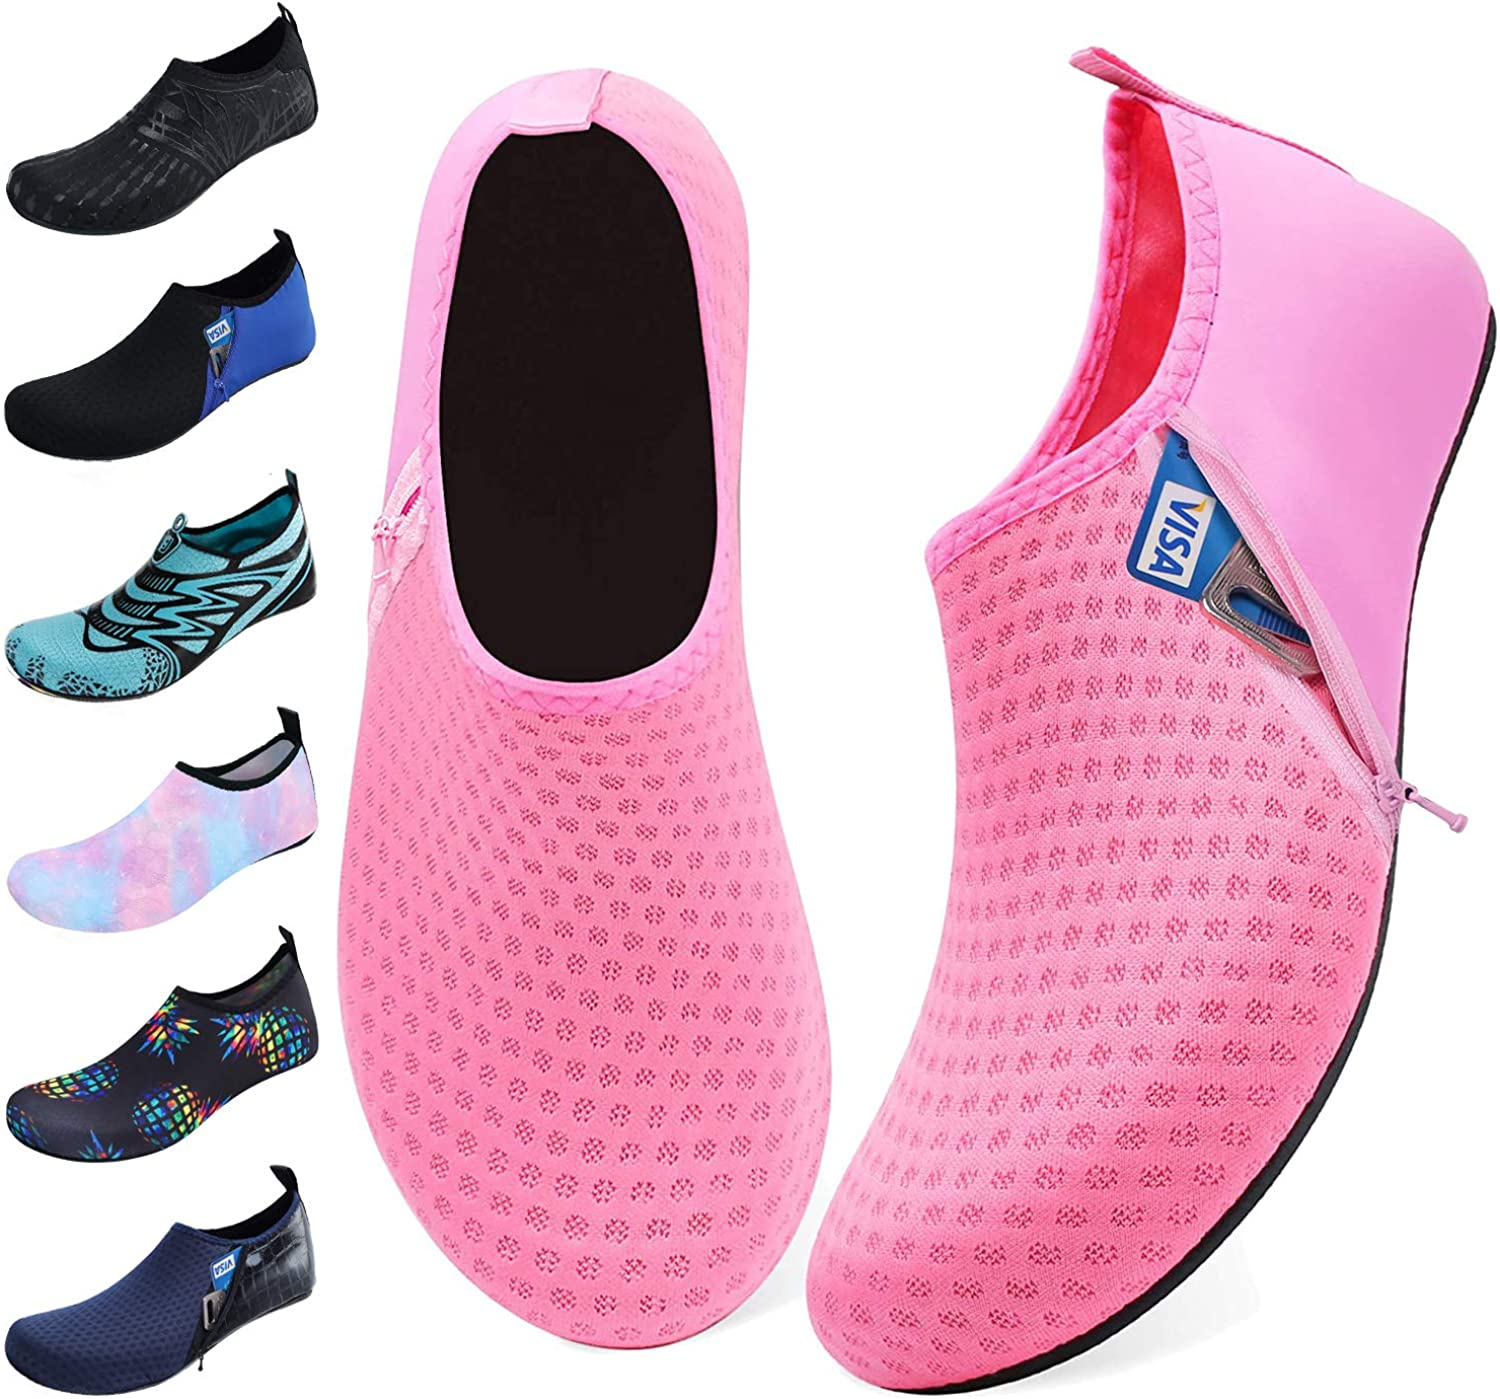 JOINFREE Women's Men's Kid Summer Popular brand in the world Shoes Water Shoe Quic Tucson Mall Barefoot